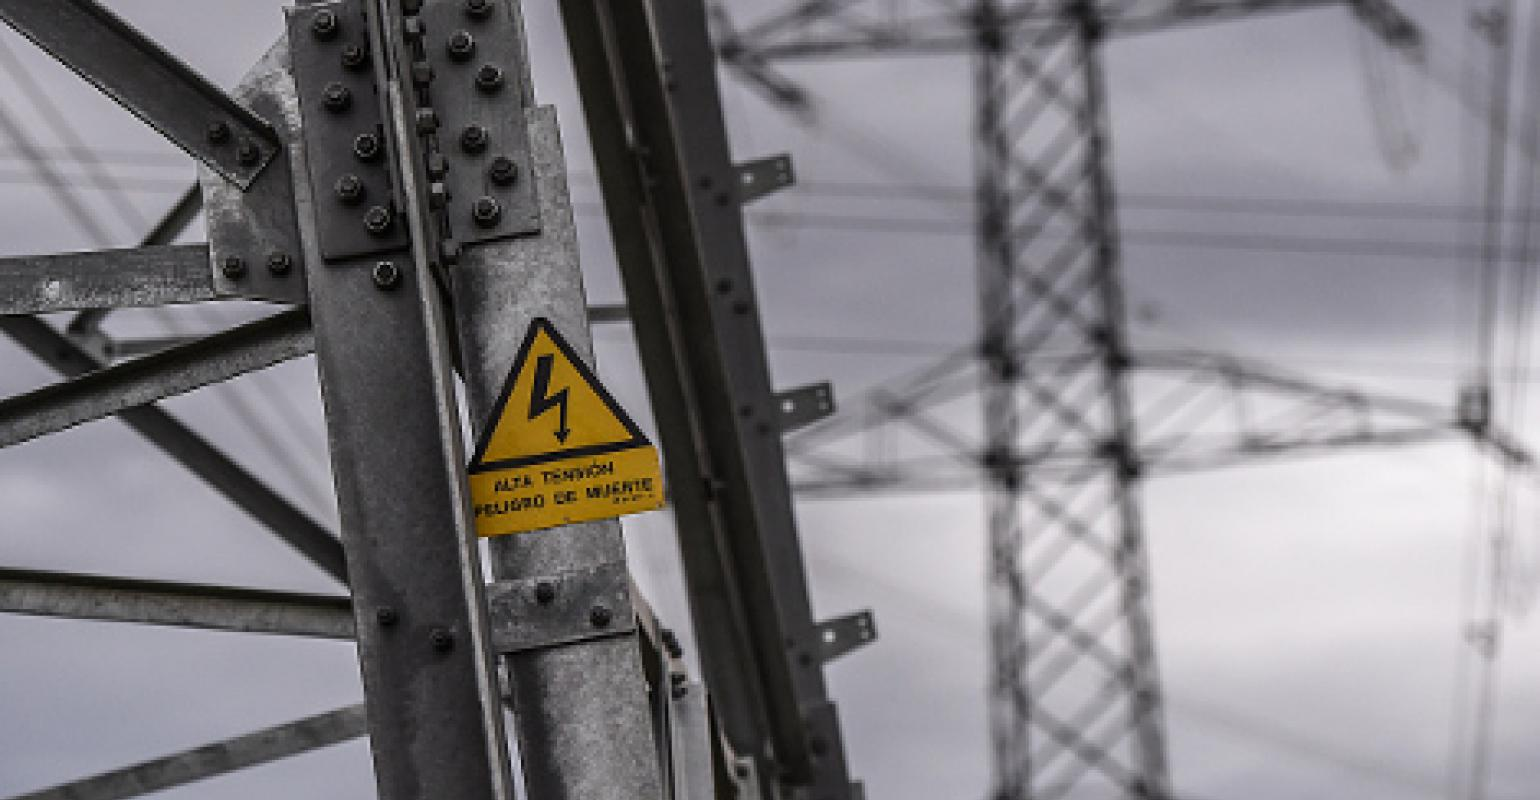 Contractors Fined after Electrocution Death at Morgan Stanley Data